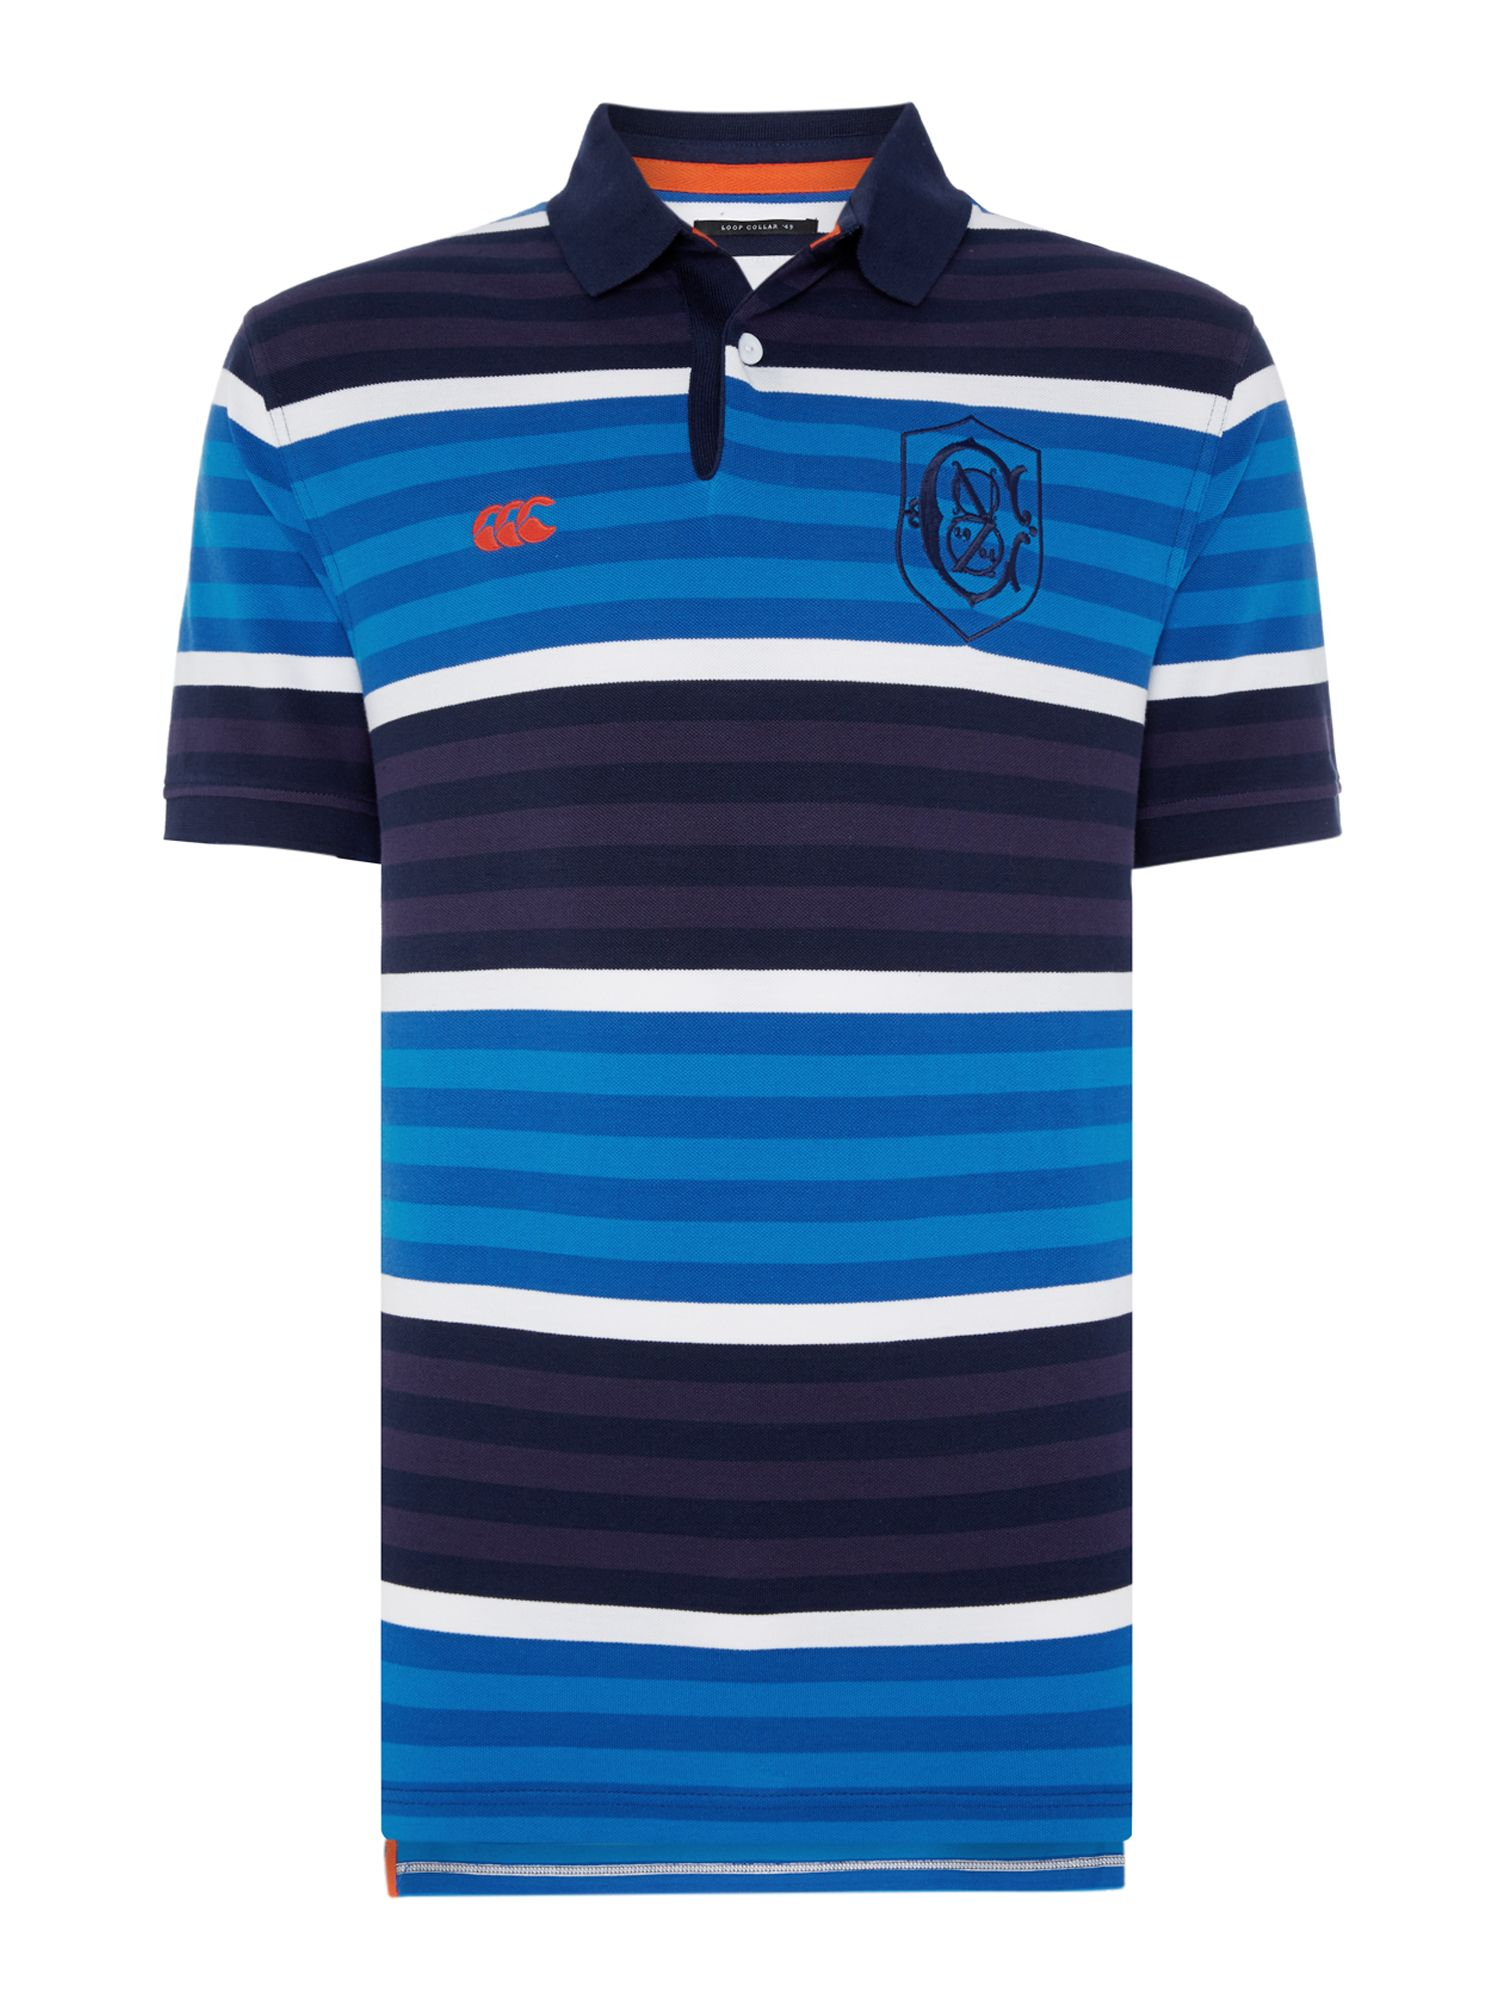 Men's Canterbury Yarn Dyed Stripe Pique Polo, Blue